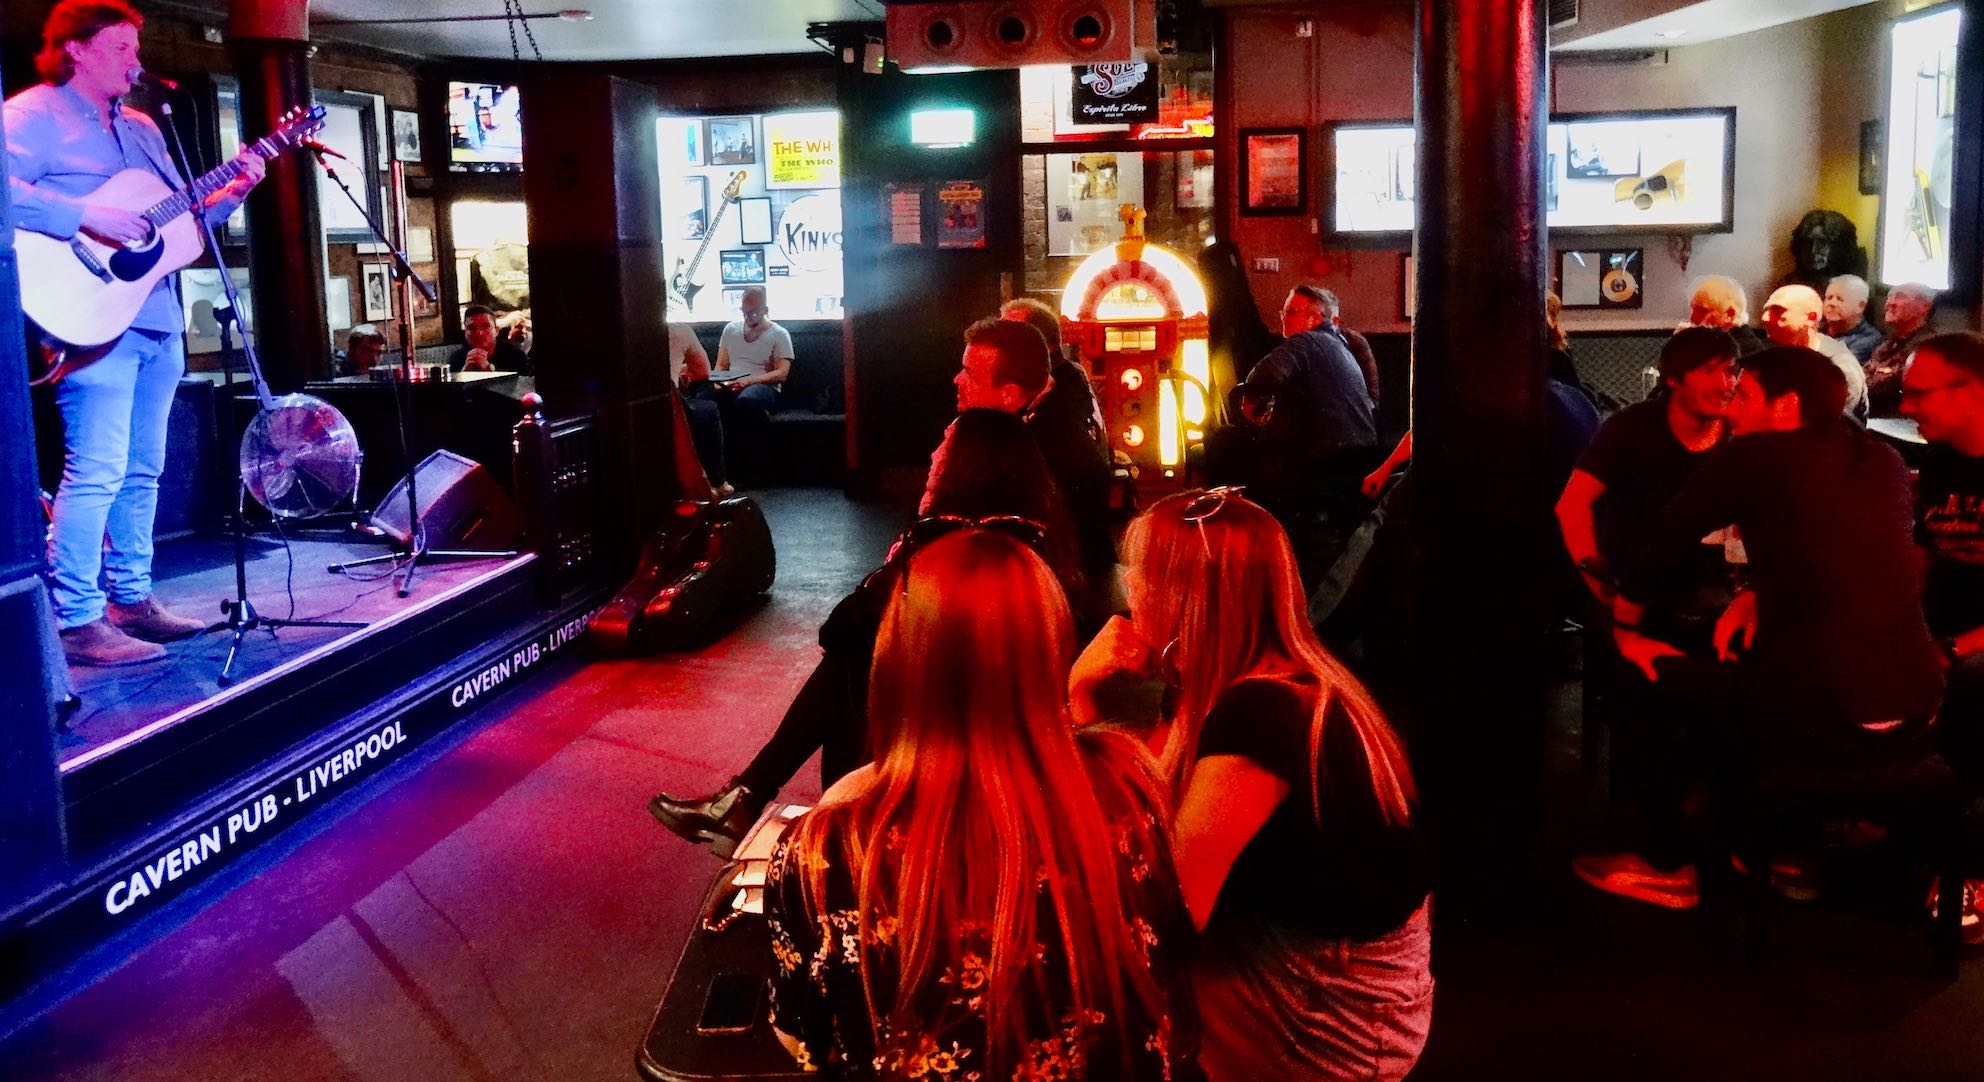 Live music at The Cavern Pub in Liverpool